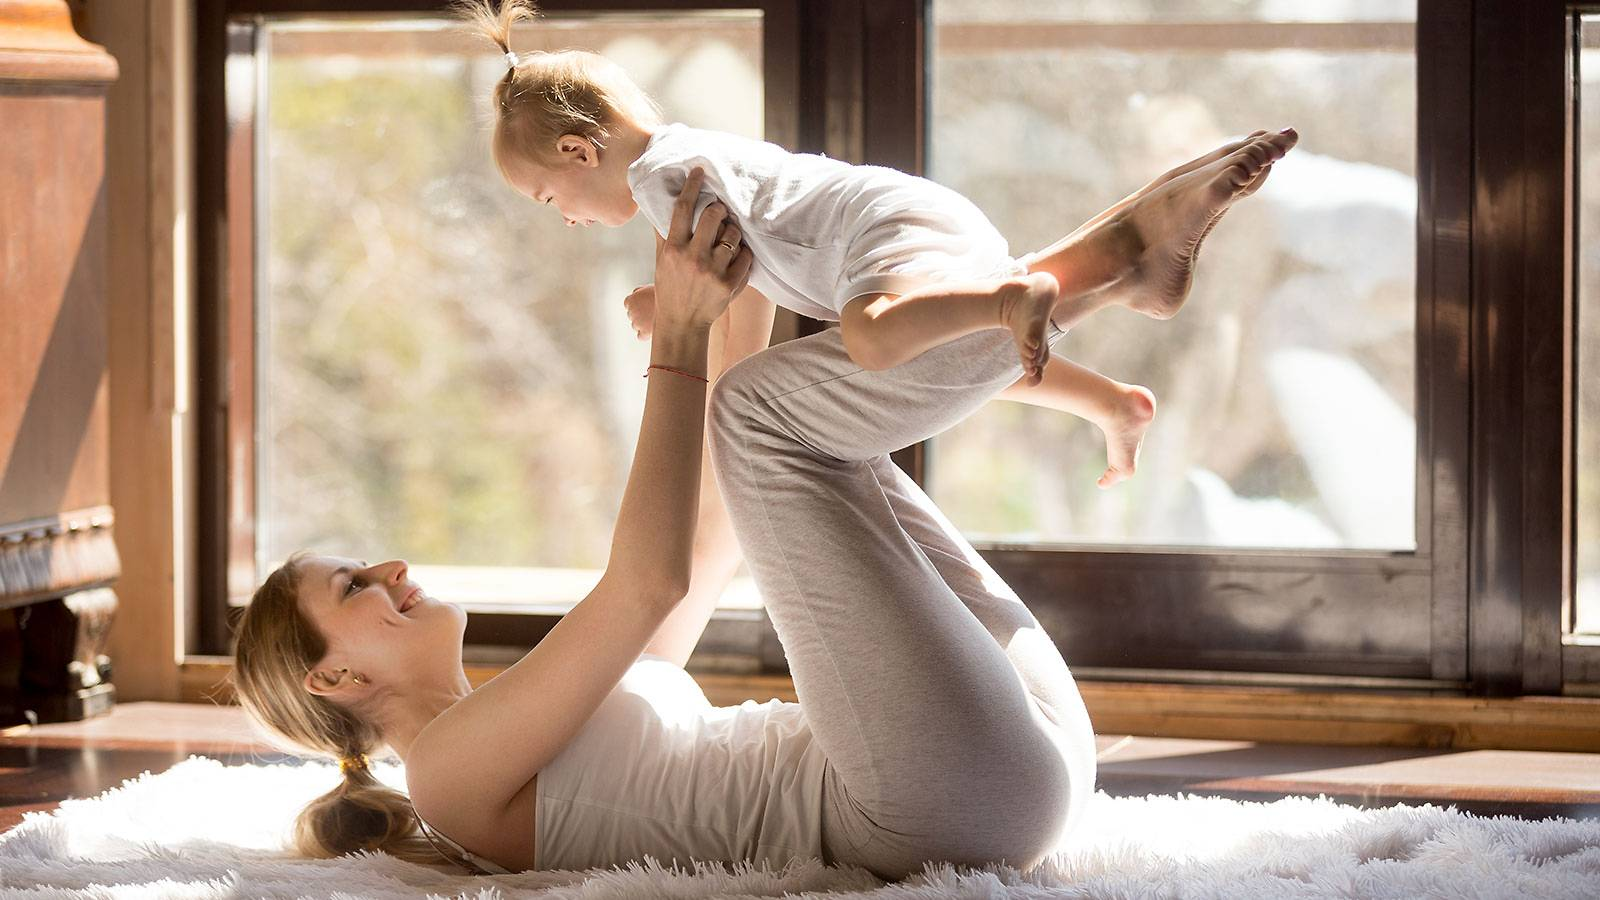 Babies-[SPB-#04-p4-Rep'd]-11-fun-ways-to-boost-your-baby's-motor-development-2